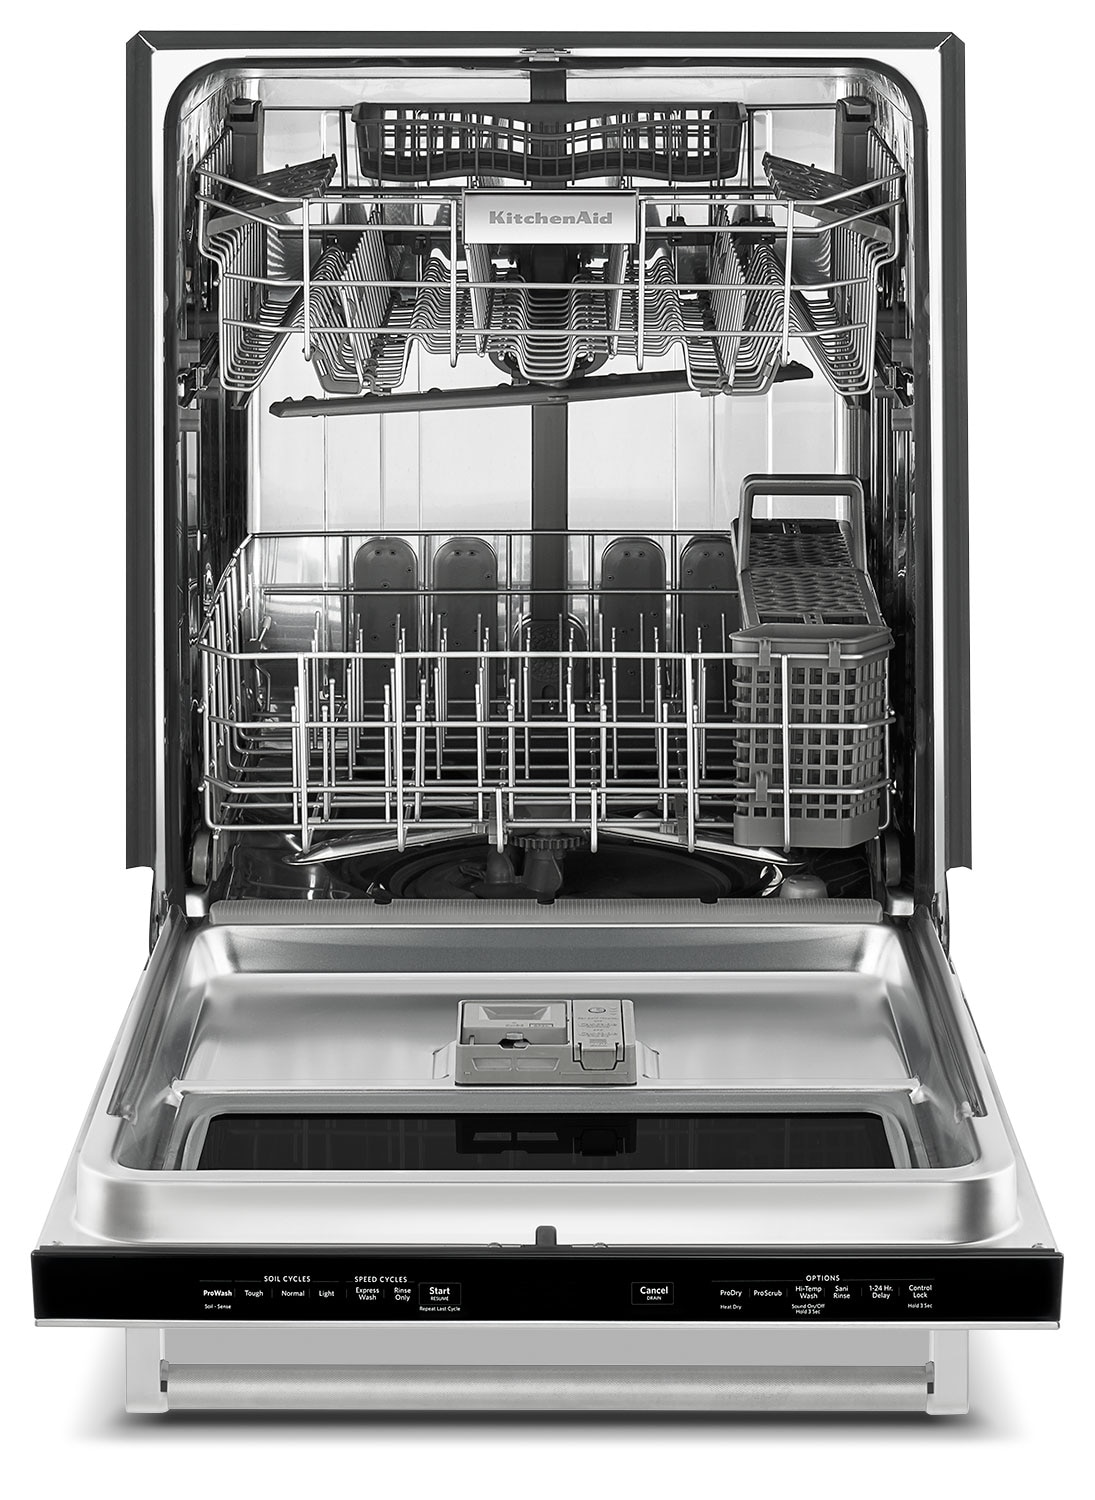 Kitchen Aid Dish Washer With Window  Racks